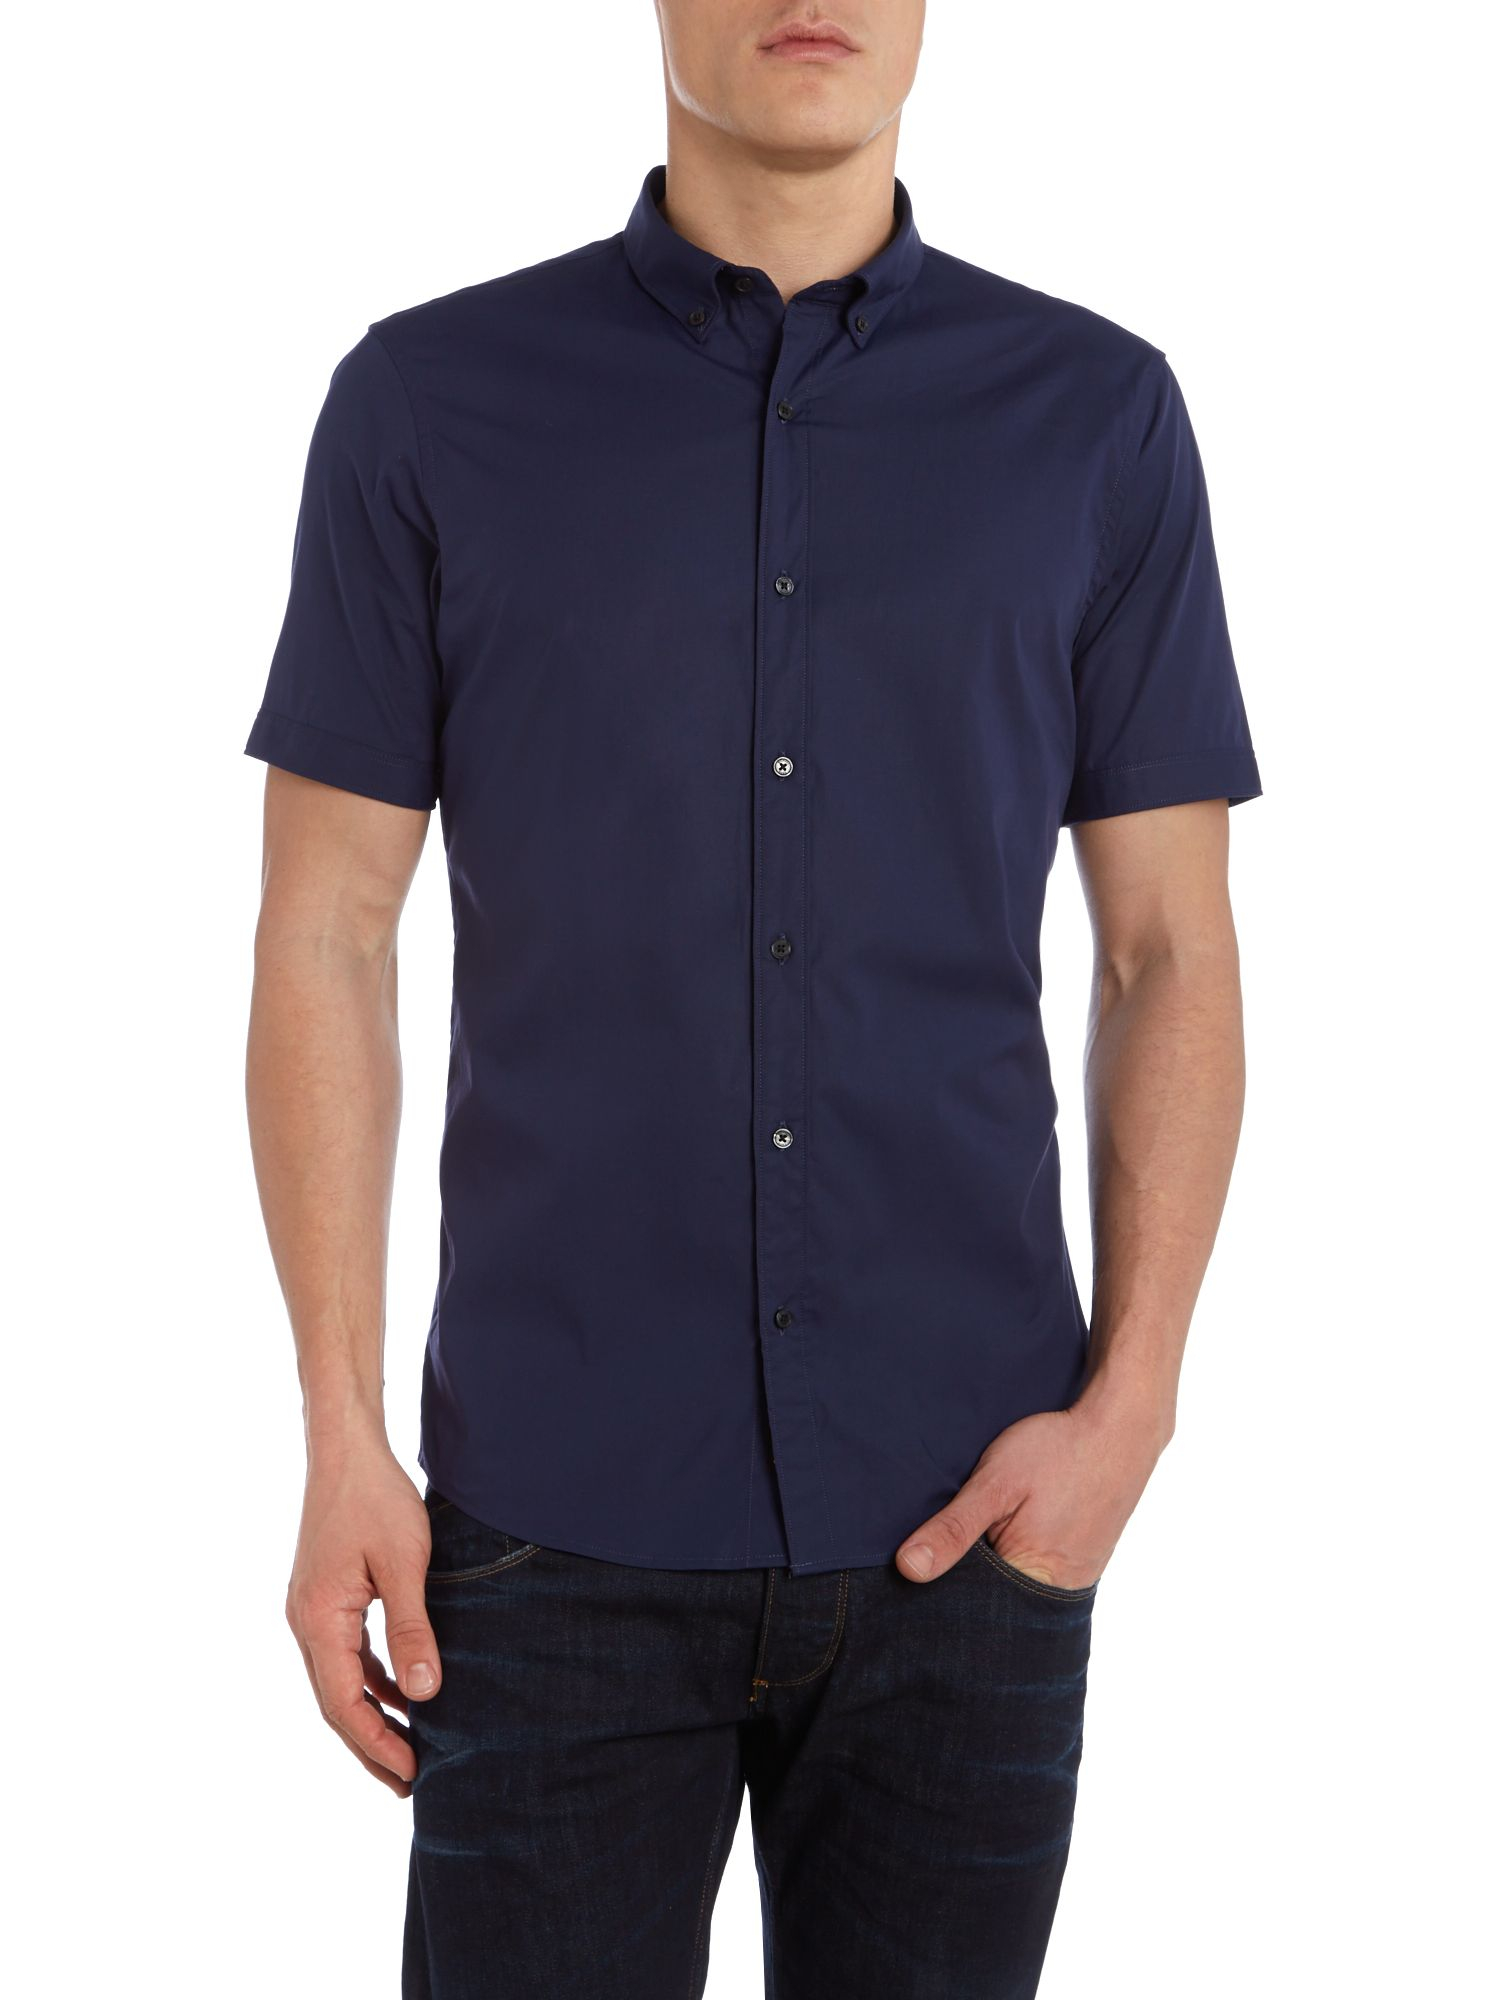 Lyst michael kors slim fit short sleeve button down for Athletic fit button down shirts